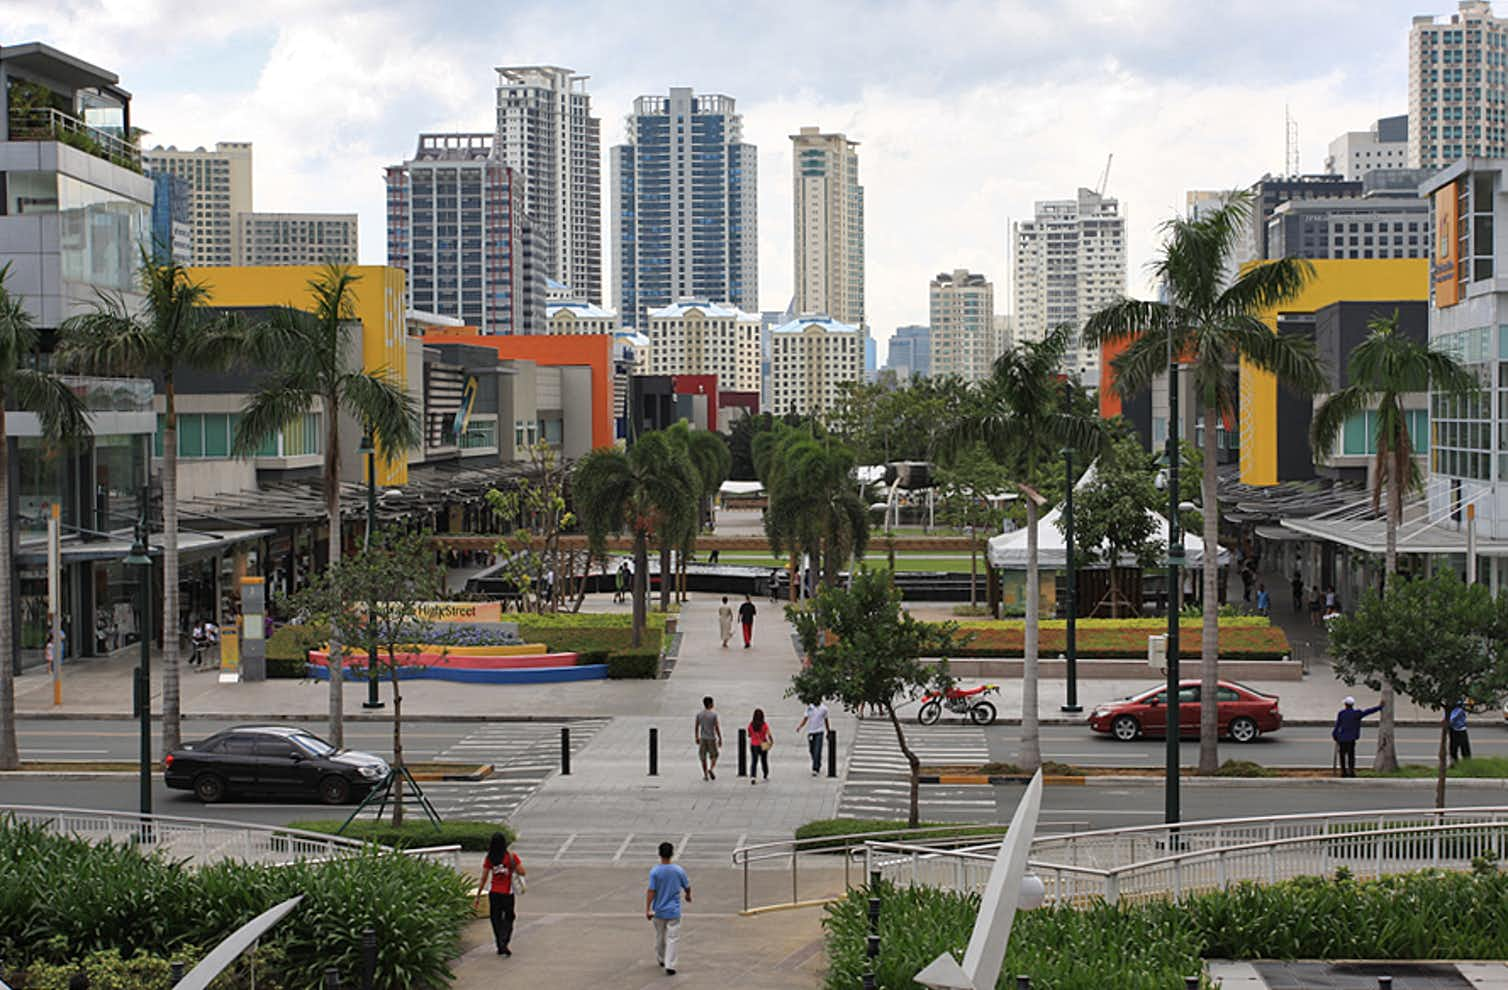 Bonifacio Global City in the Philippines has a lot of embedded surveillance equipment. Photo credit: alveo land/Wikimedia Commons